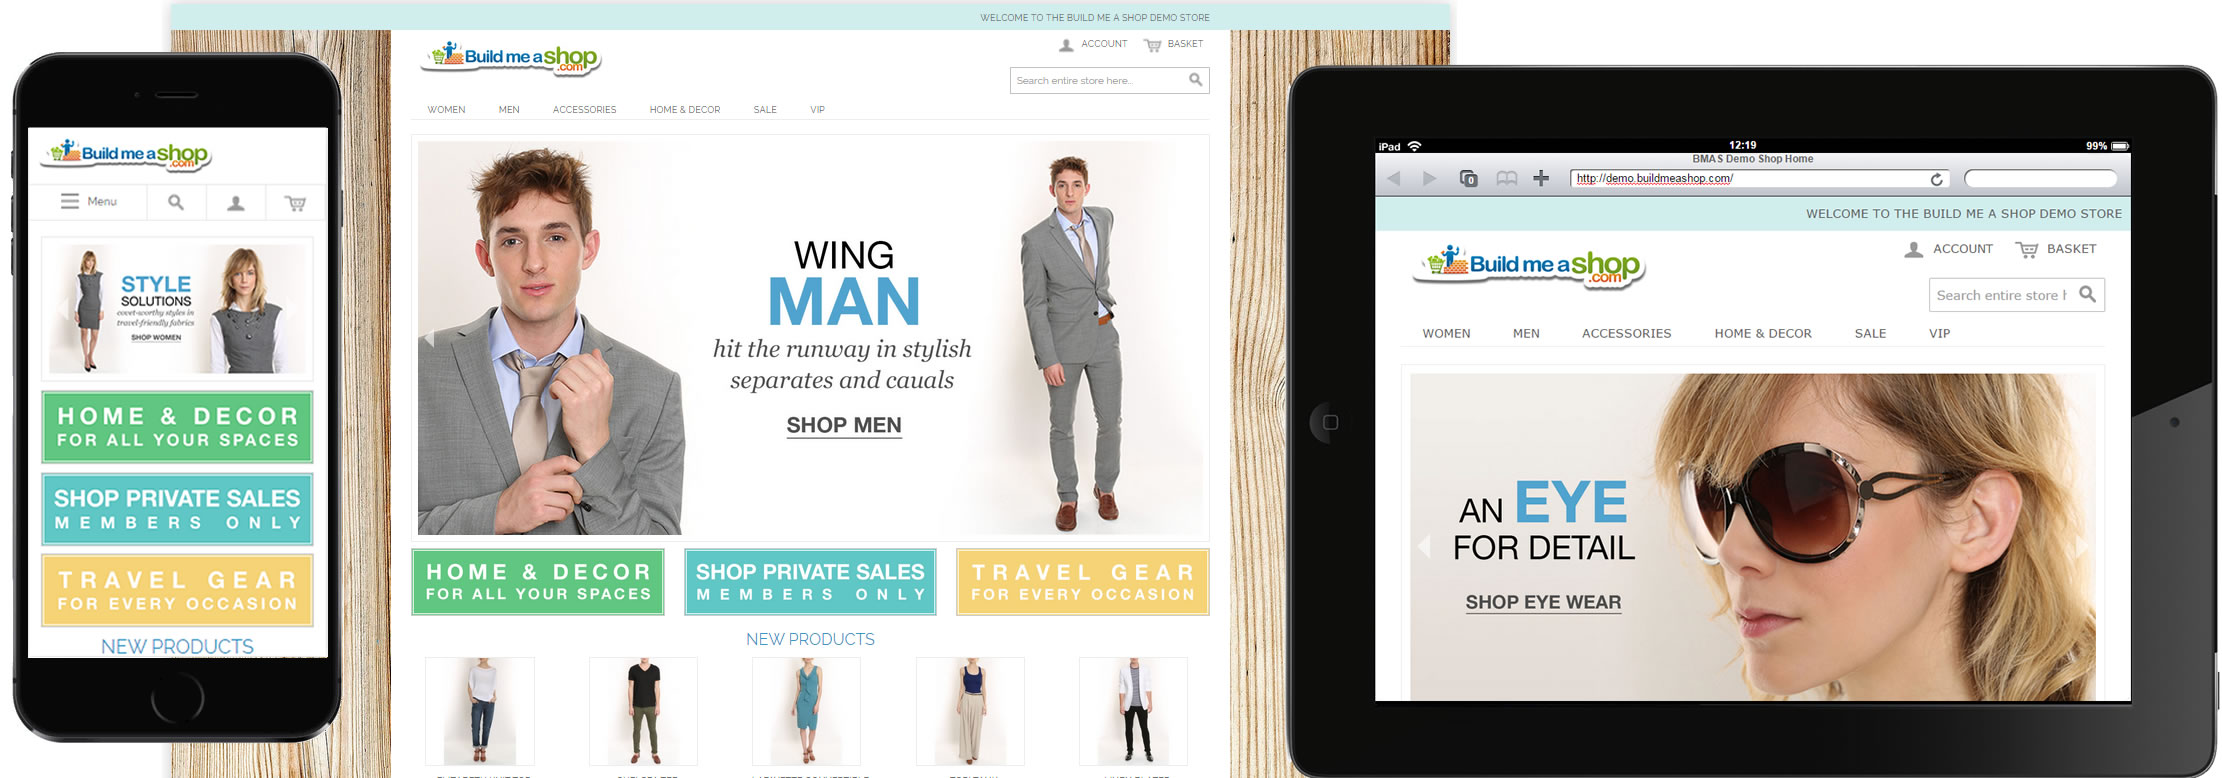 Responsive Magento webshop design for phone, tablet or desktop